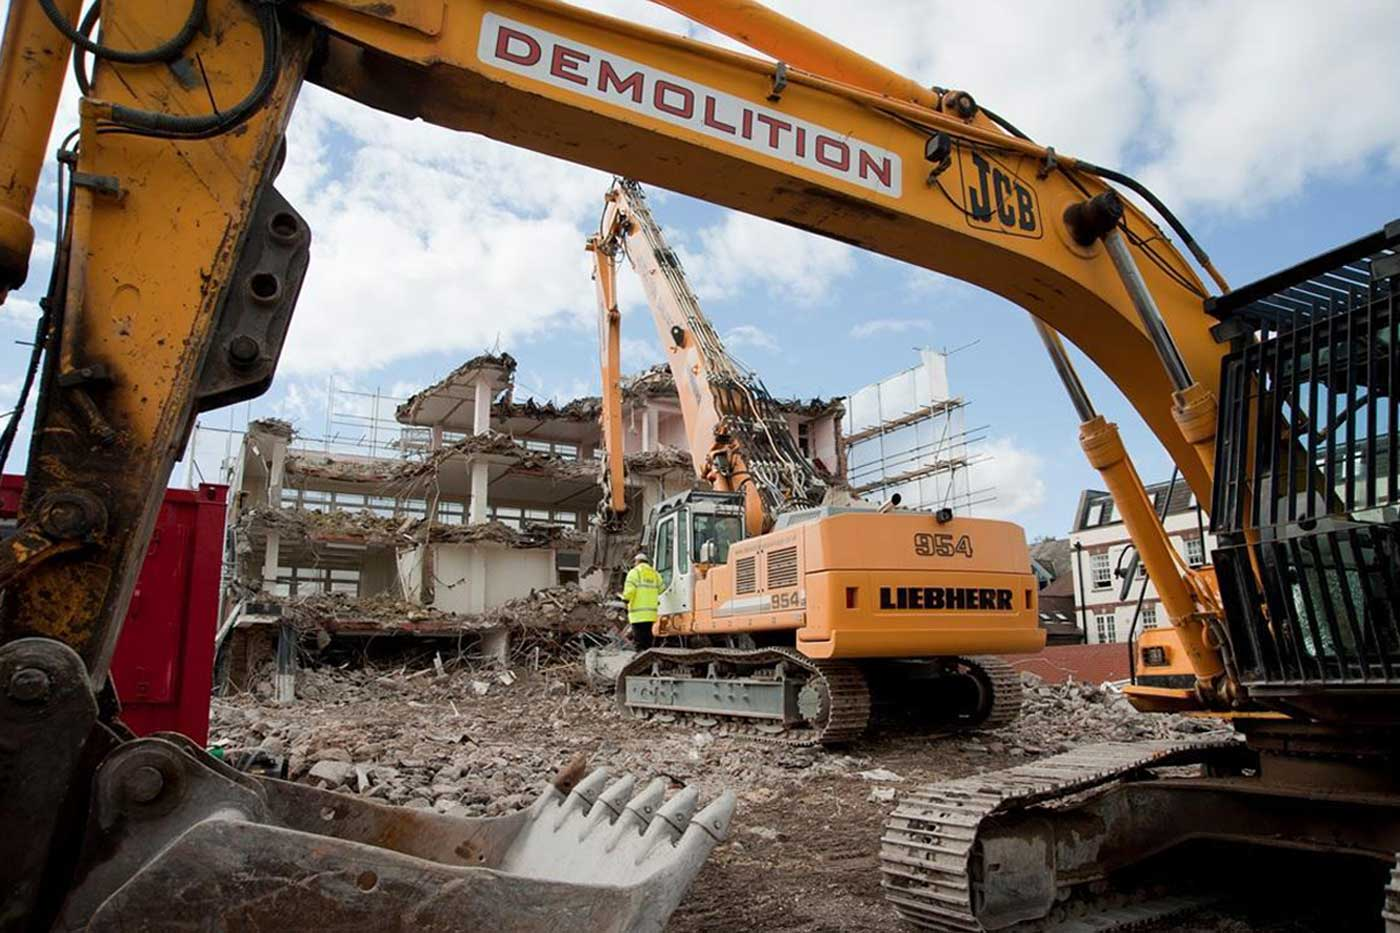 Health & Safety for the Demolition Industry